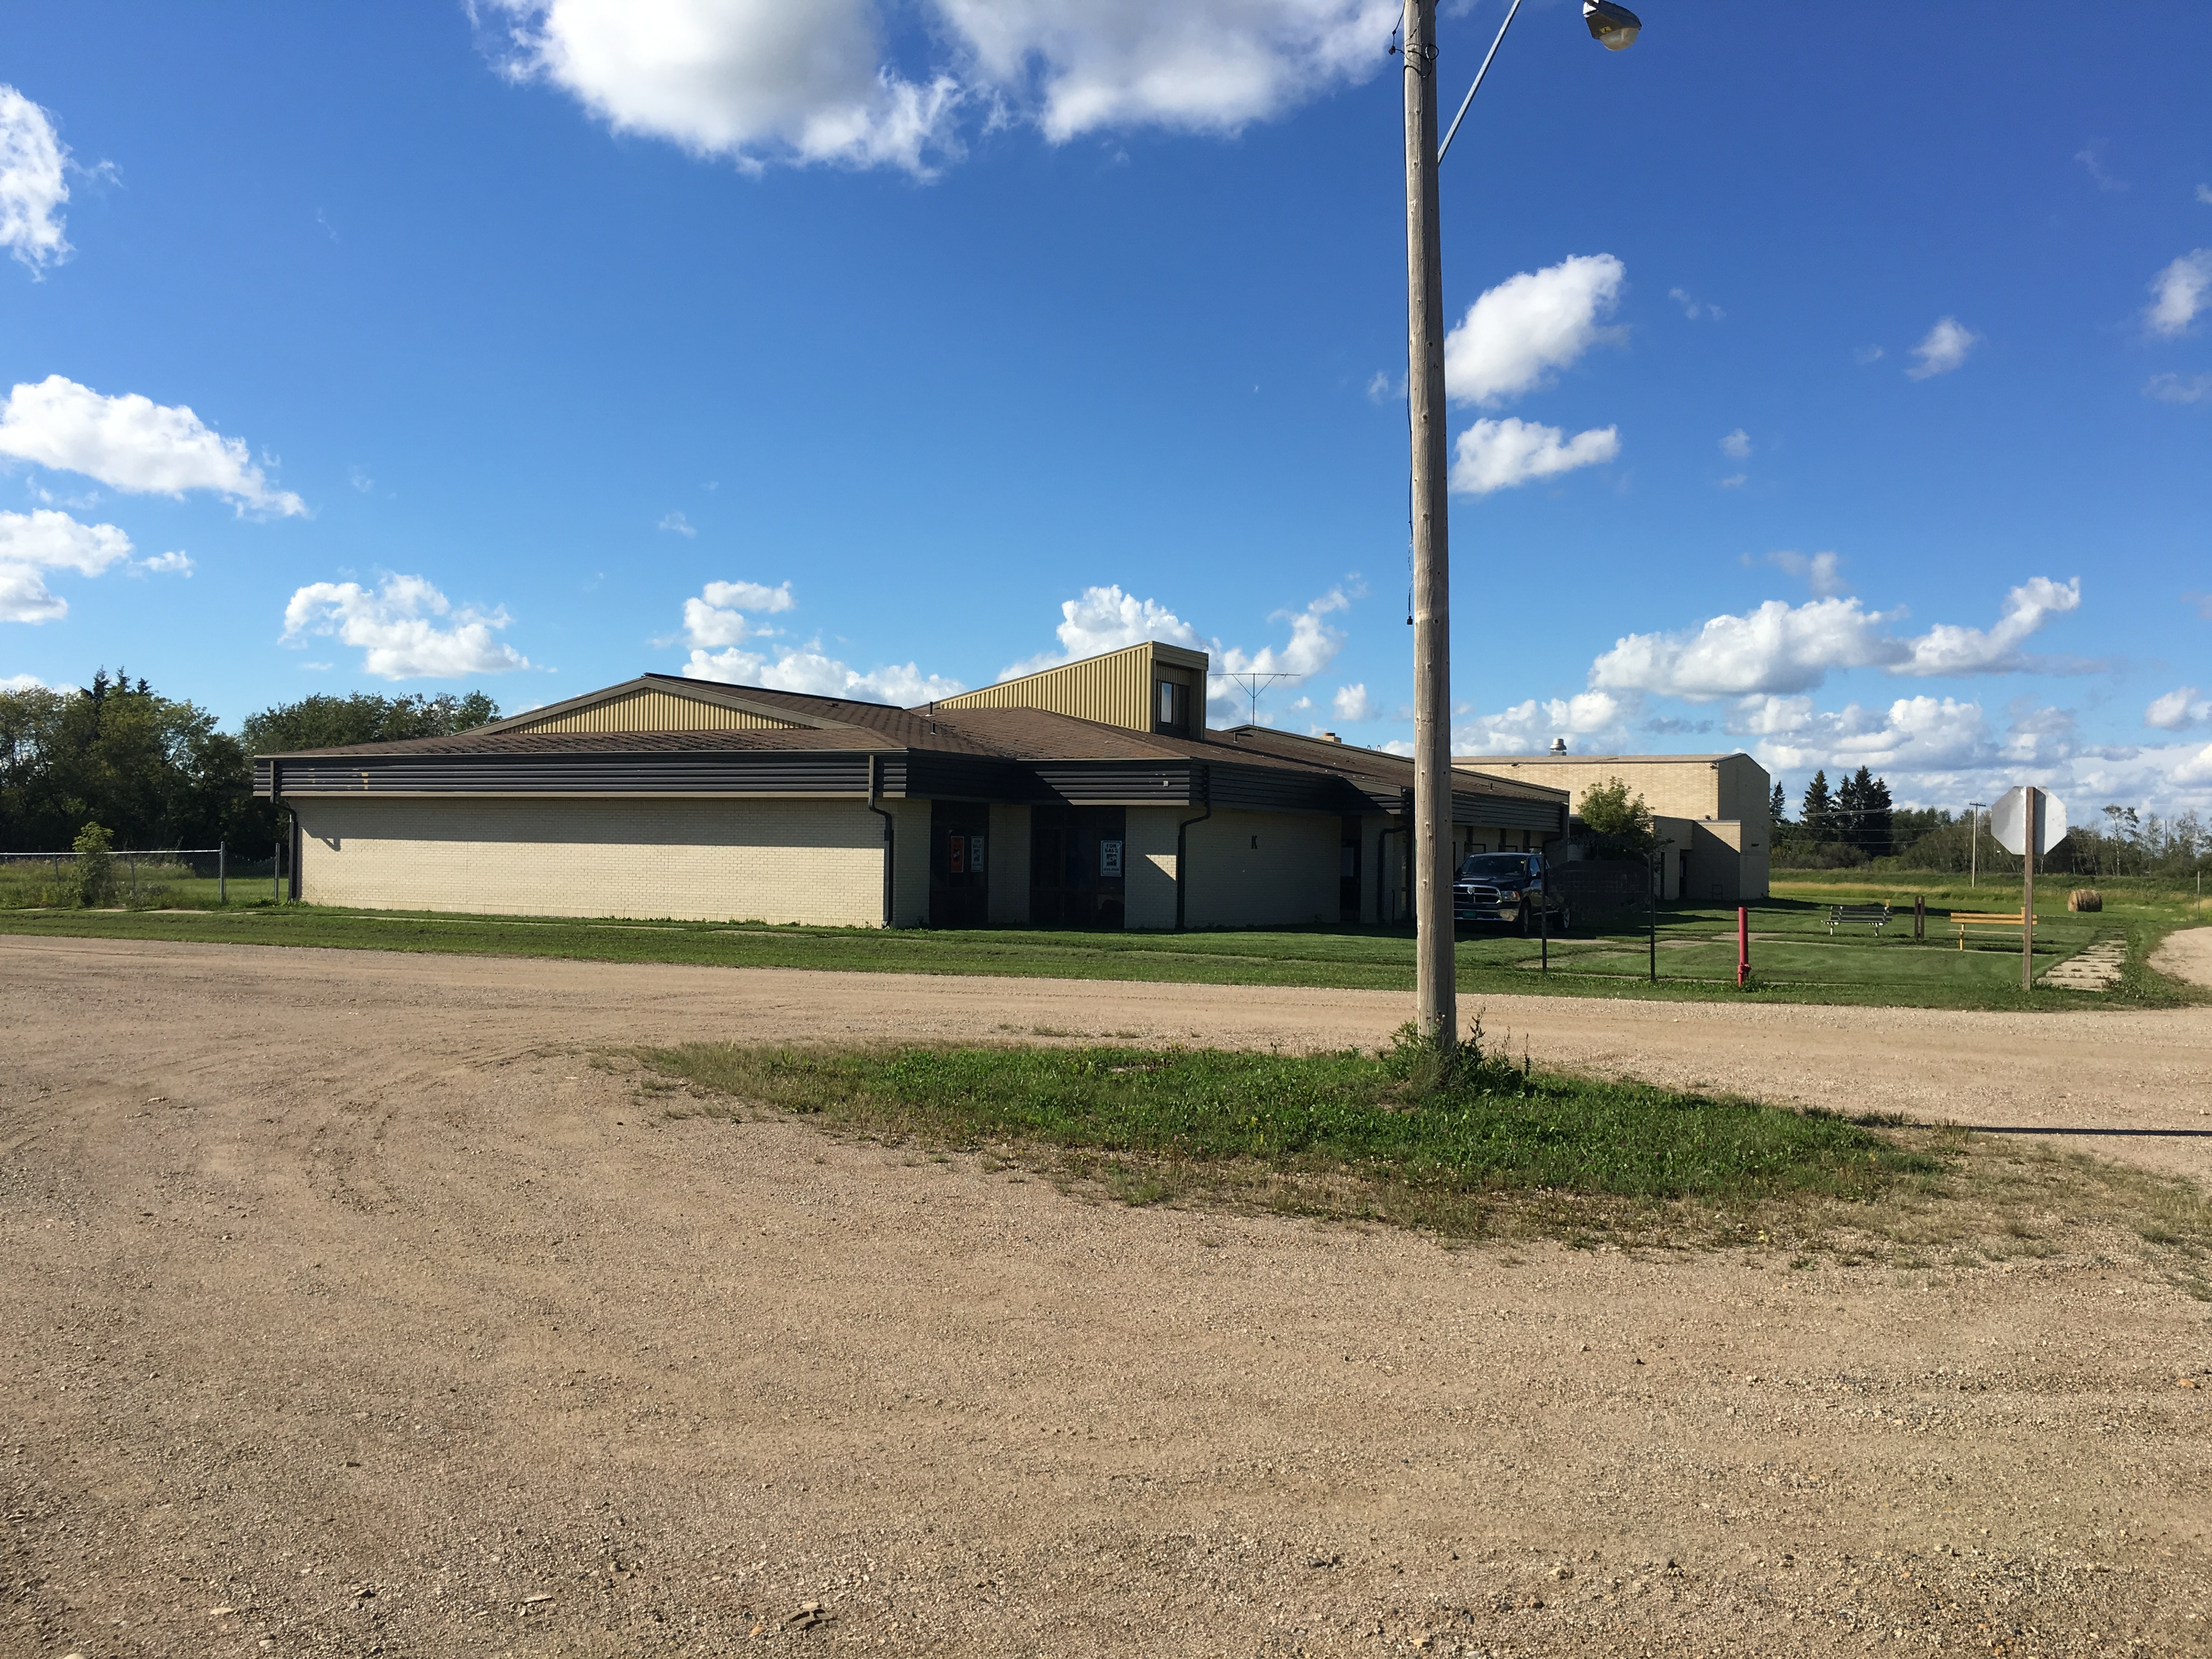 Endless posibilities Former School Qualifies for immigration program in Saskatchewan